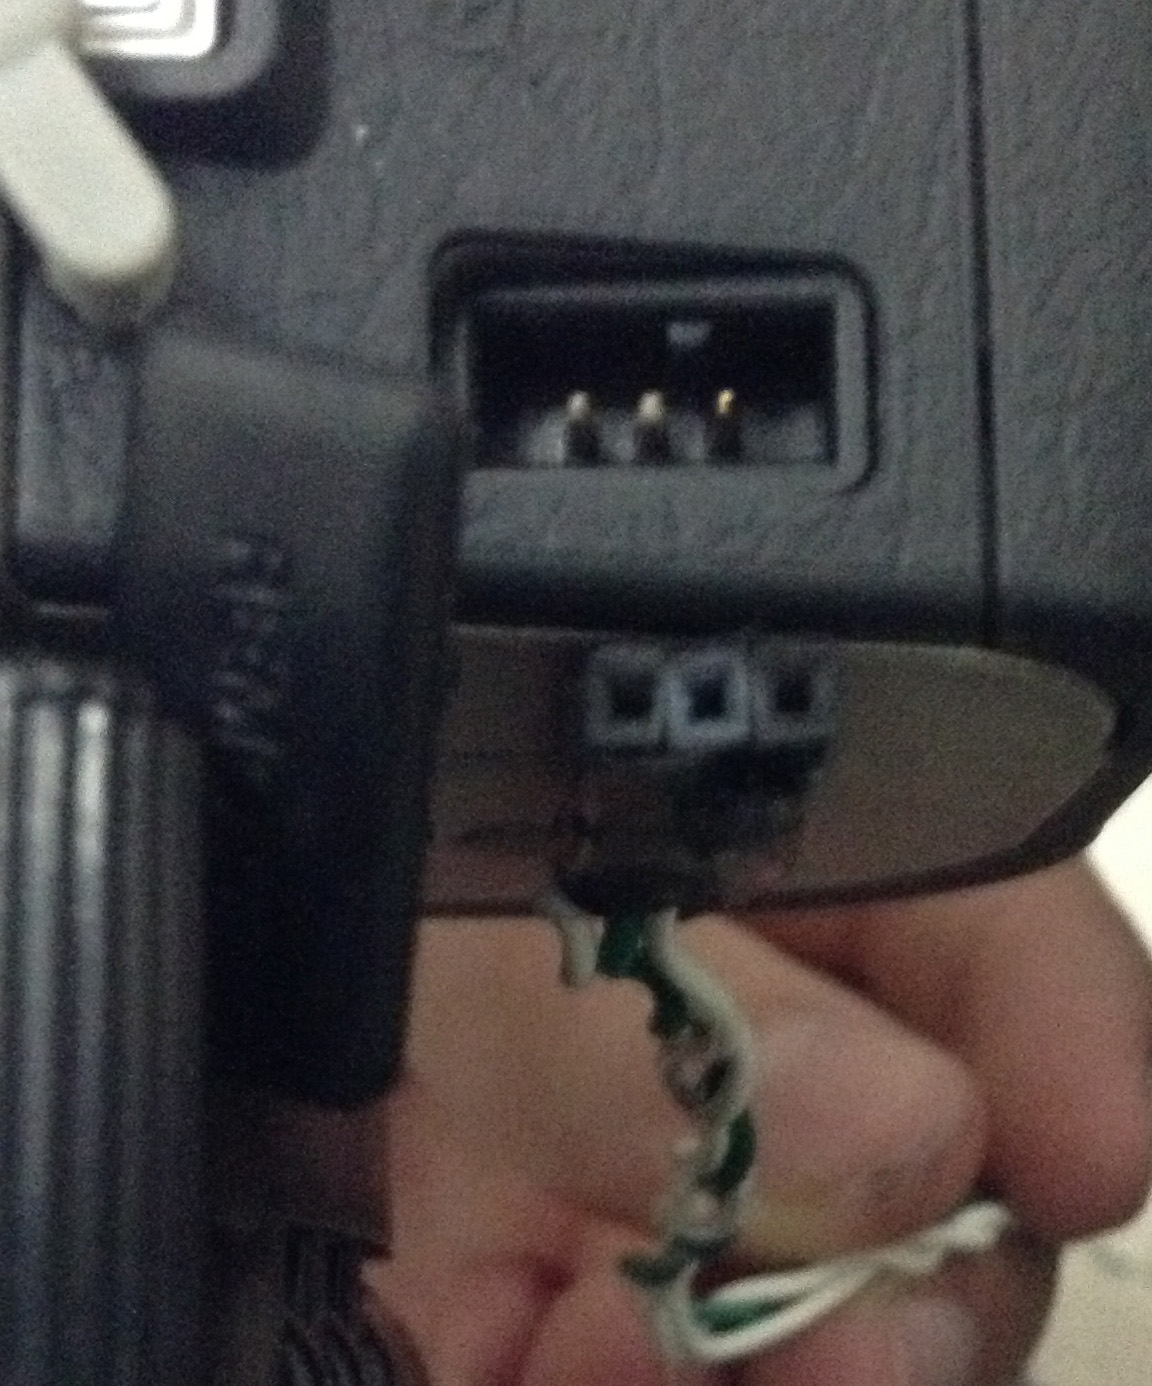 Picture of The Shutter and Focus Trigger